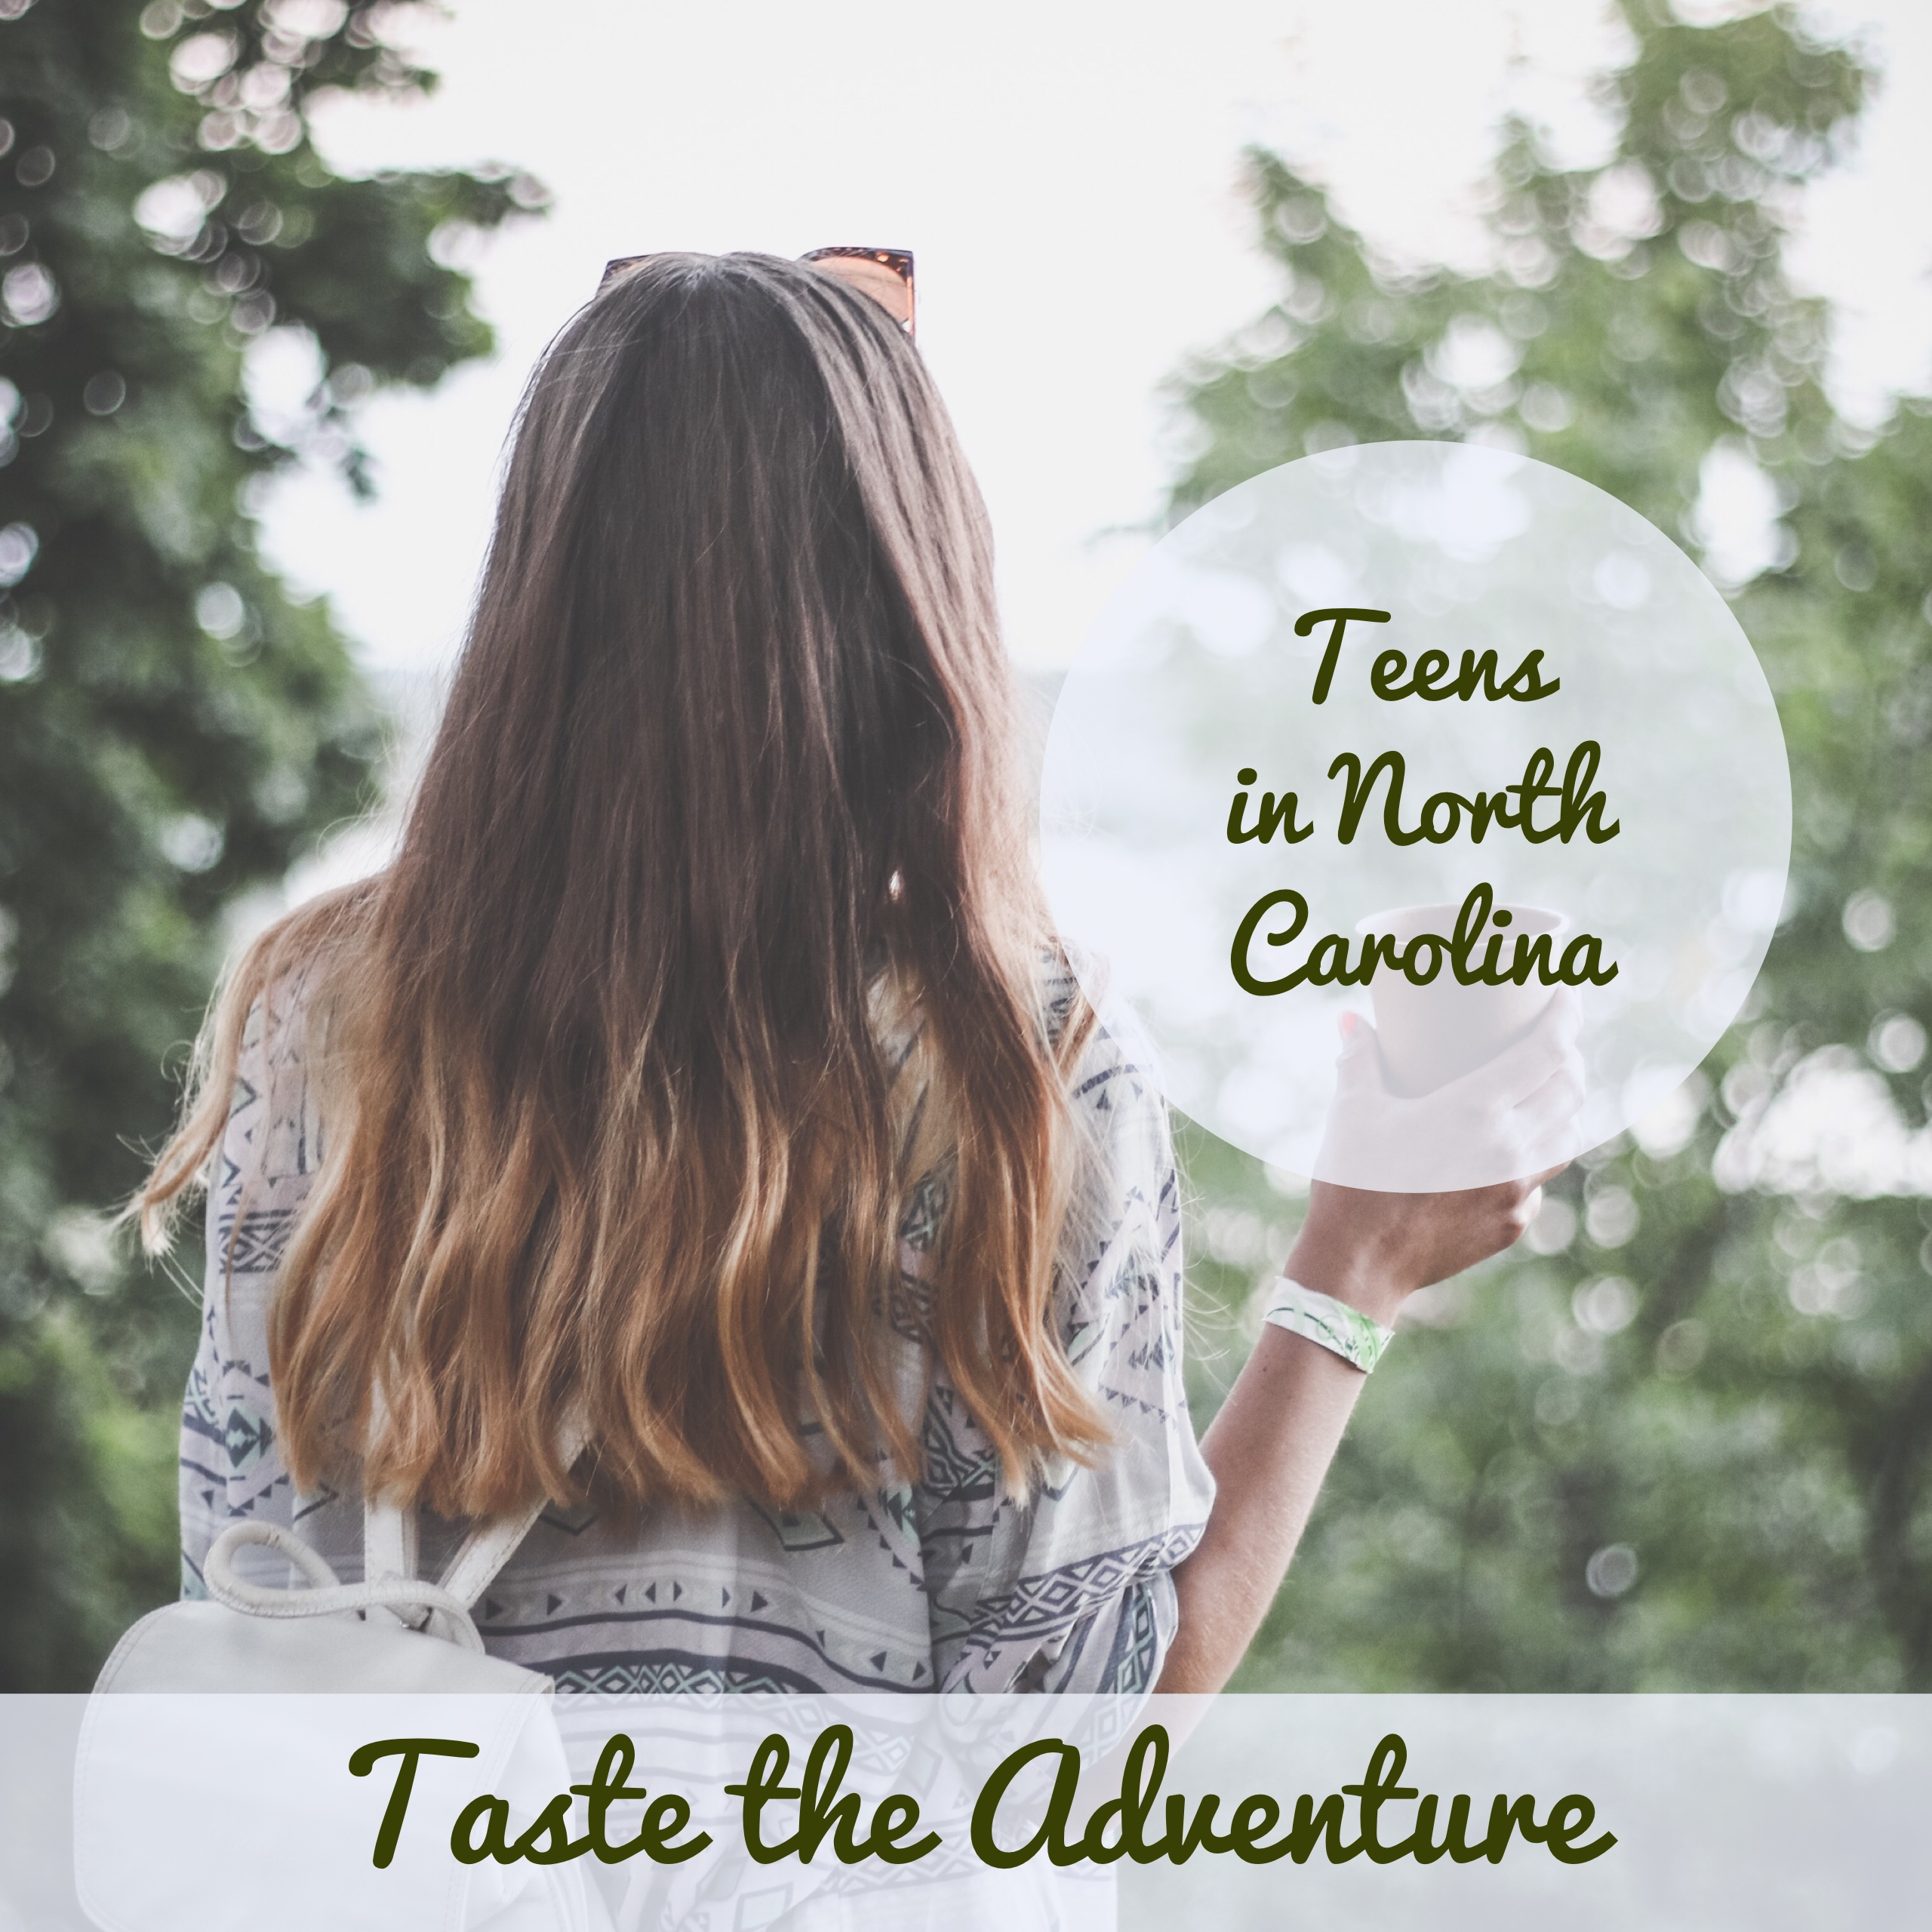 Learn about our NC Summer Adventures for Teens!